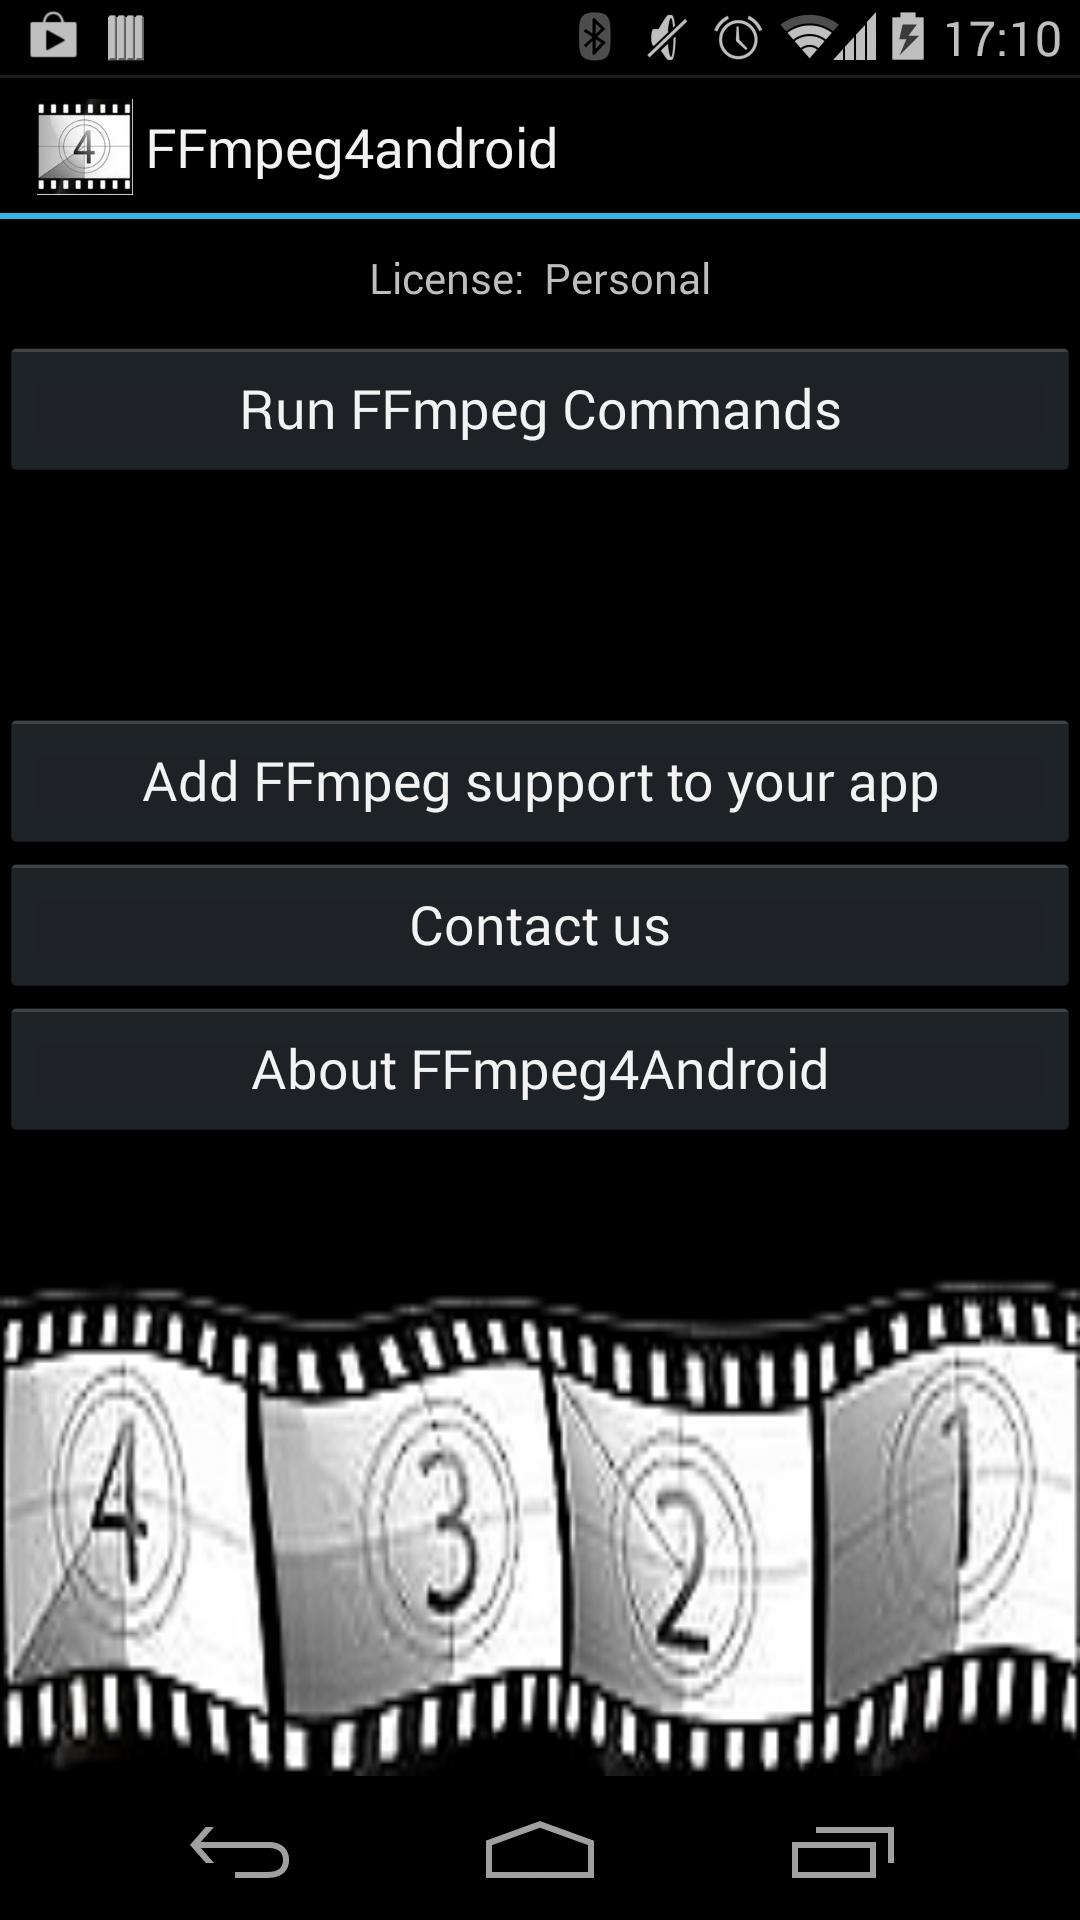 FFmpeg 4 Android for Android - APK Download